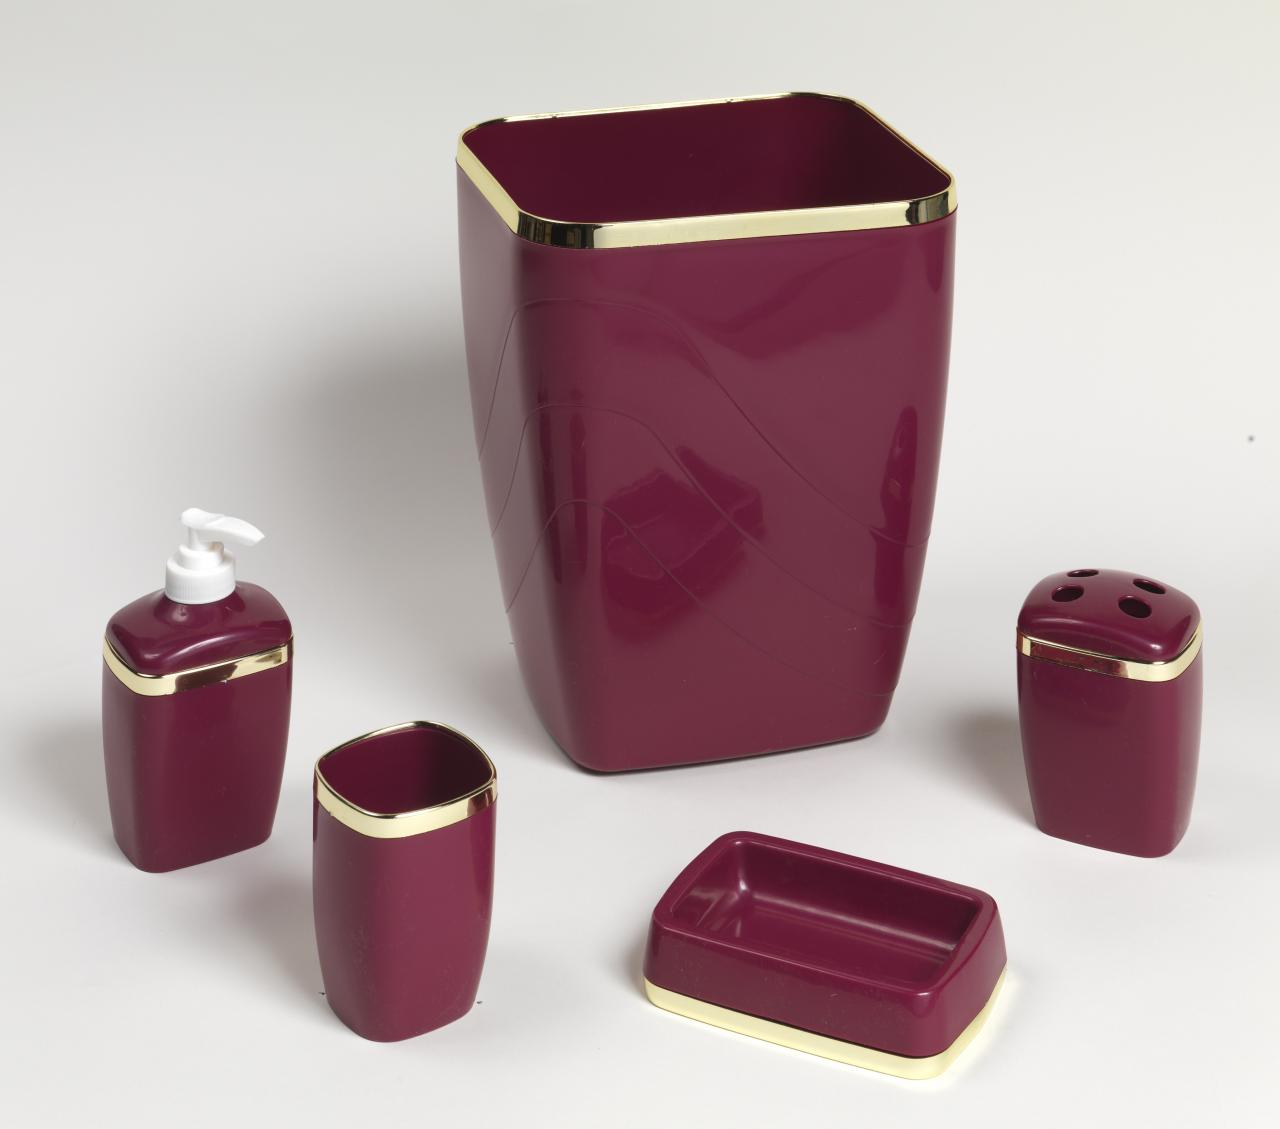 5 Piece Plastic Bath Accessory Set Burgundy